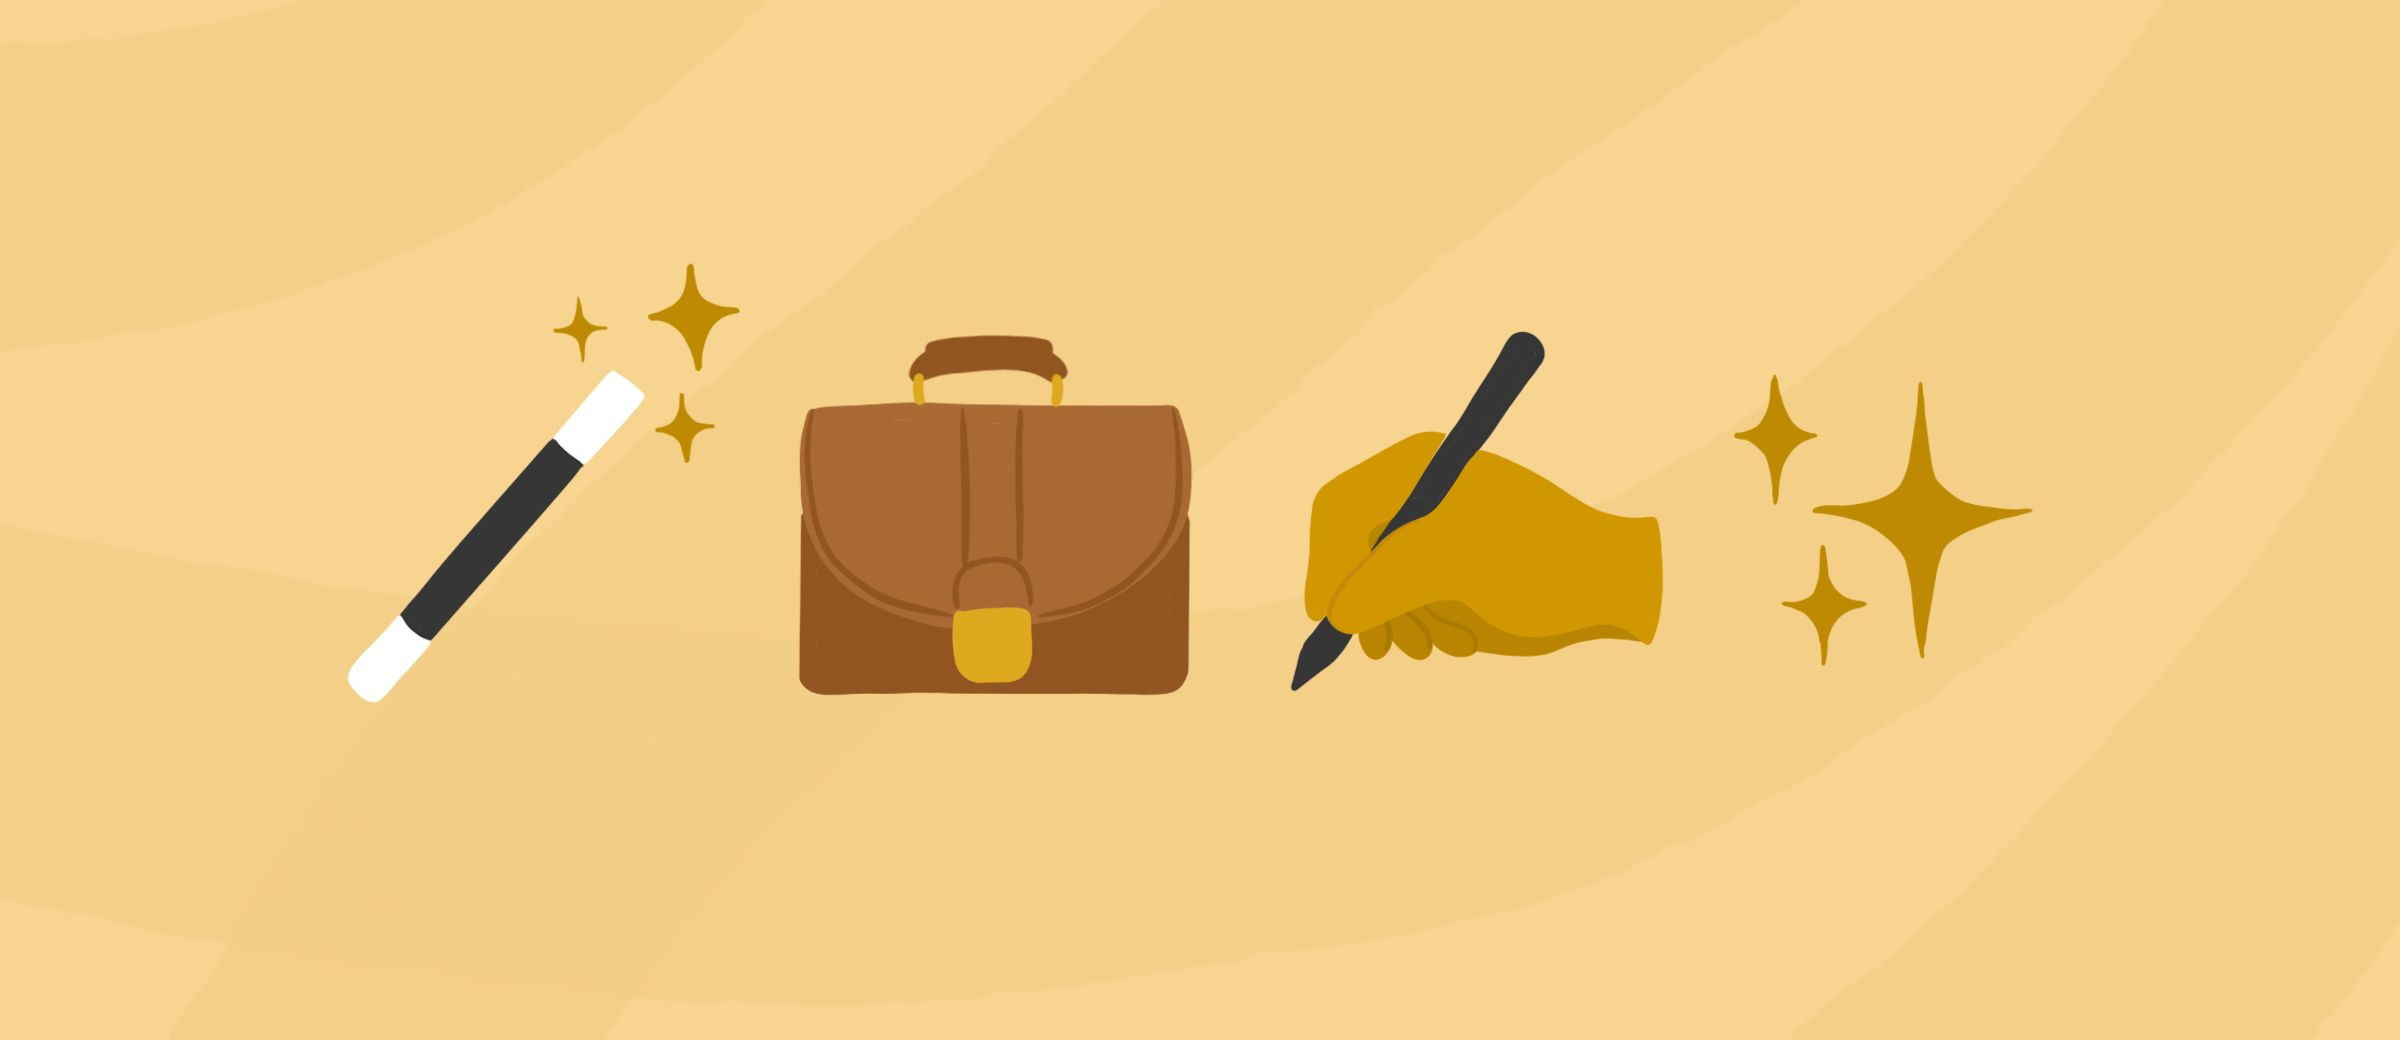 Read about Pro Tips for Small Business Owners on Content Creation, on PLANOLY